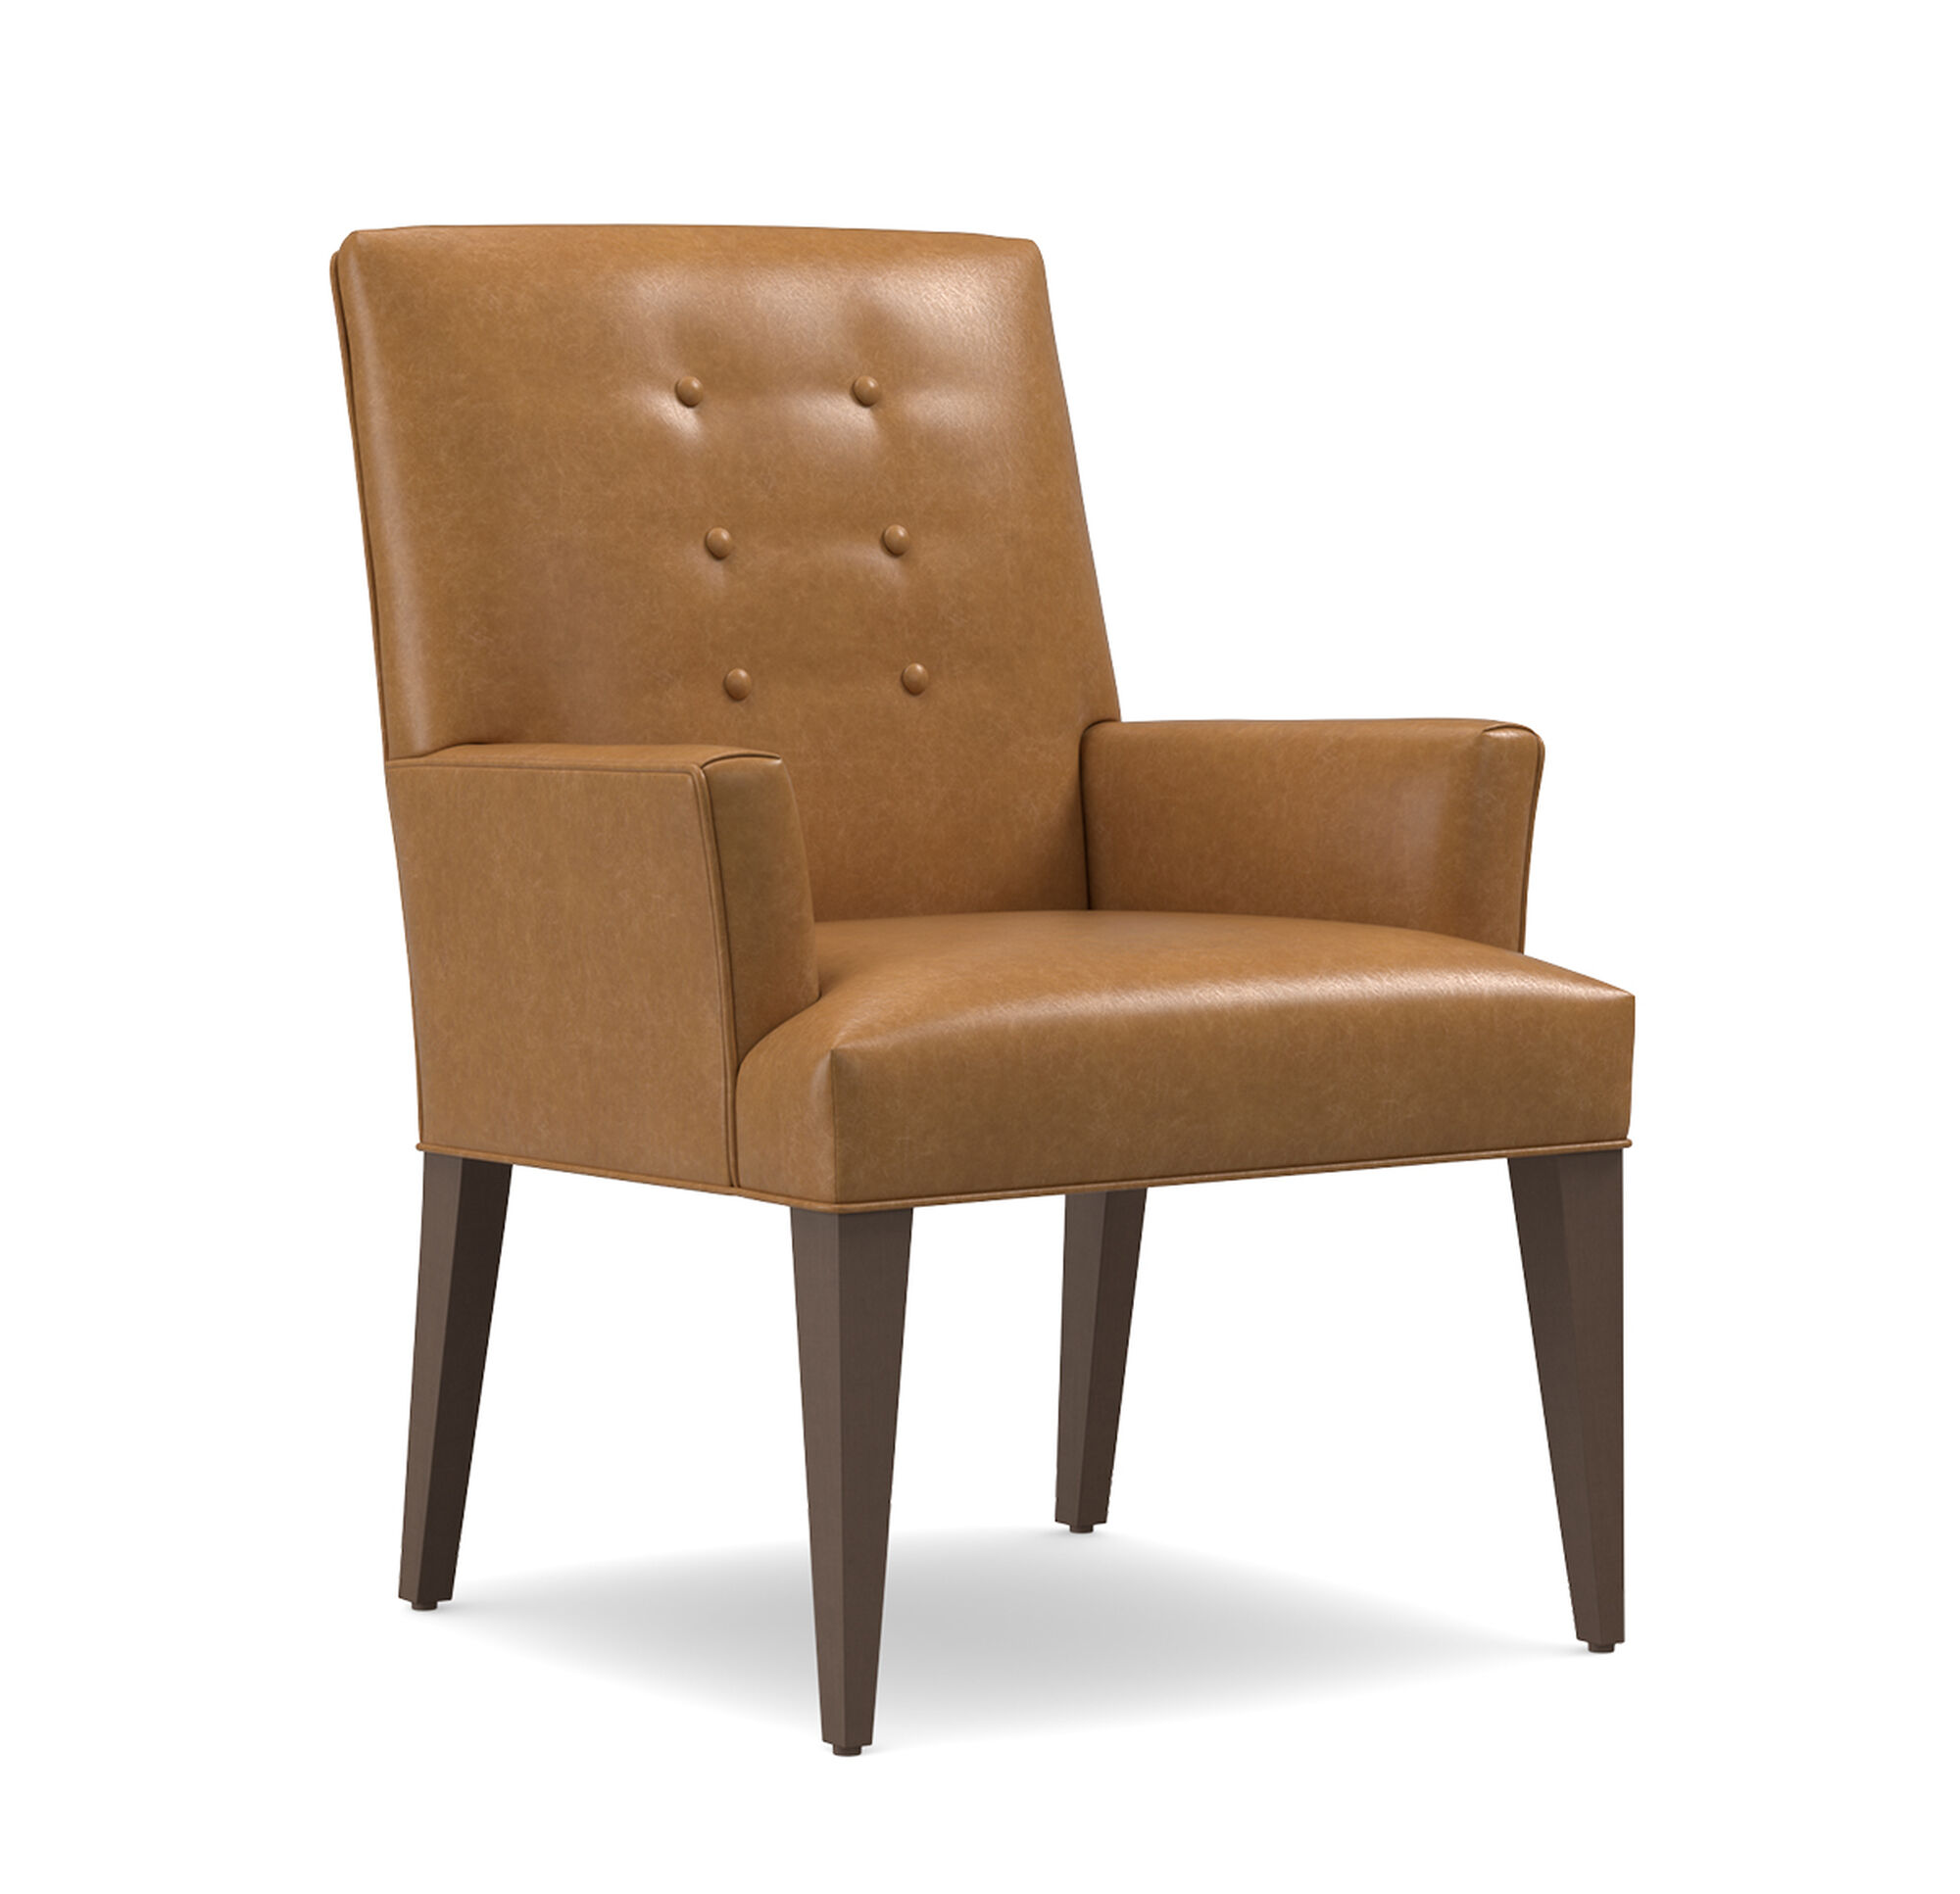 Oliver leather arm dining chair for Leather dining chairs with arms